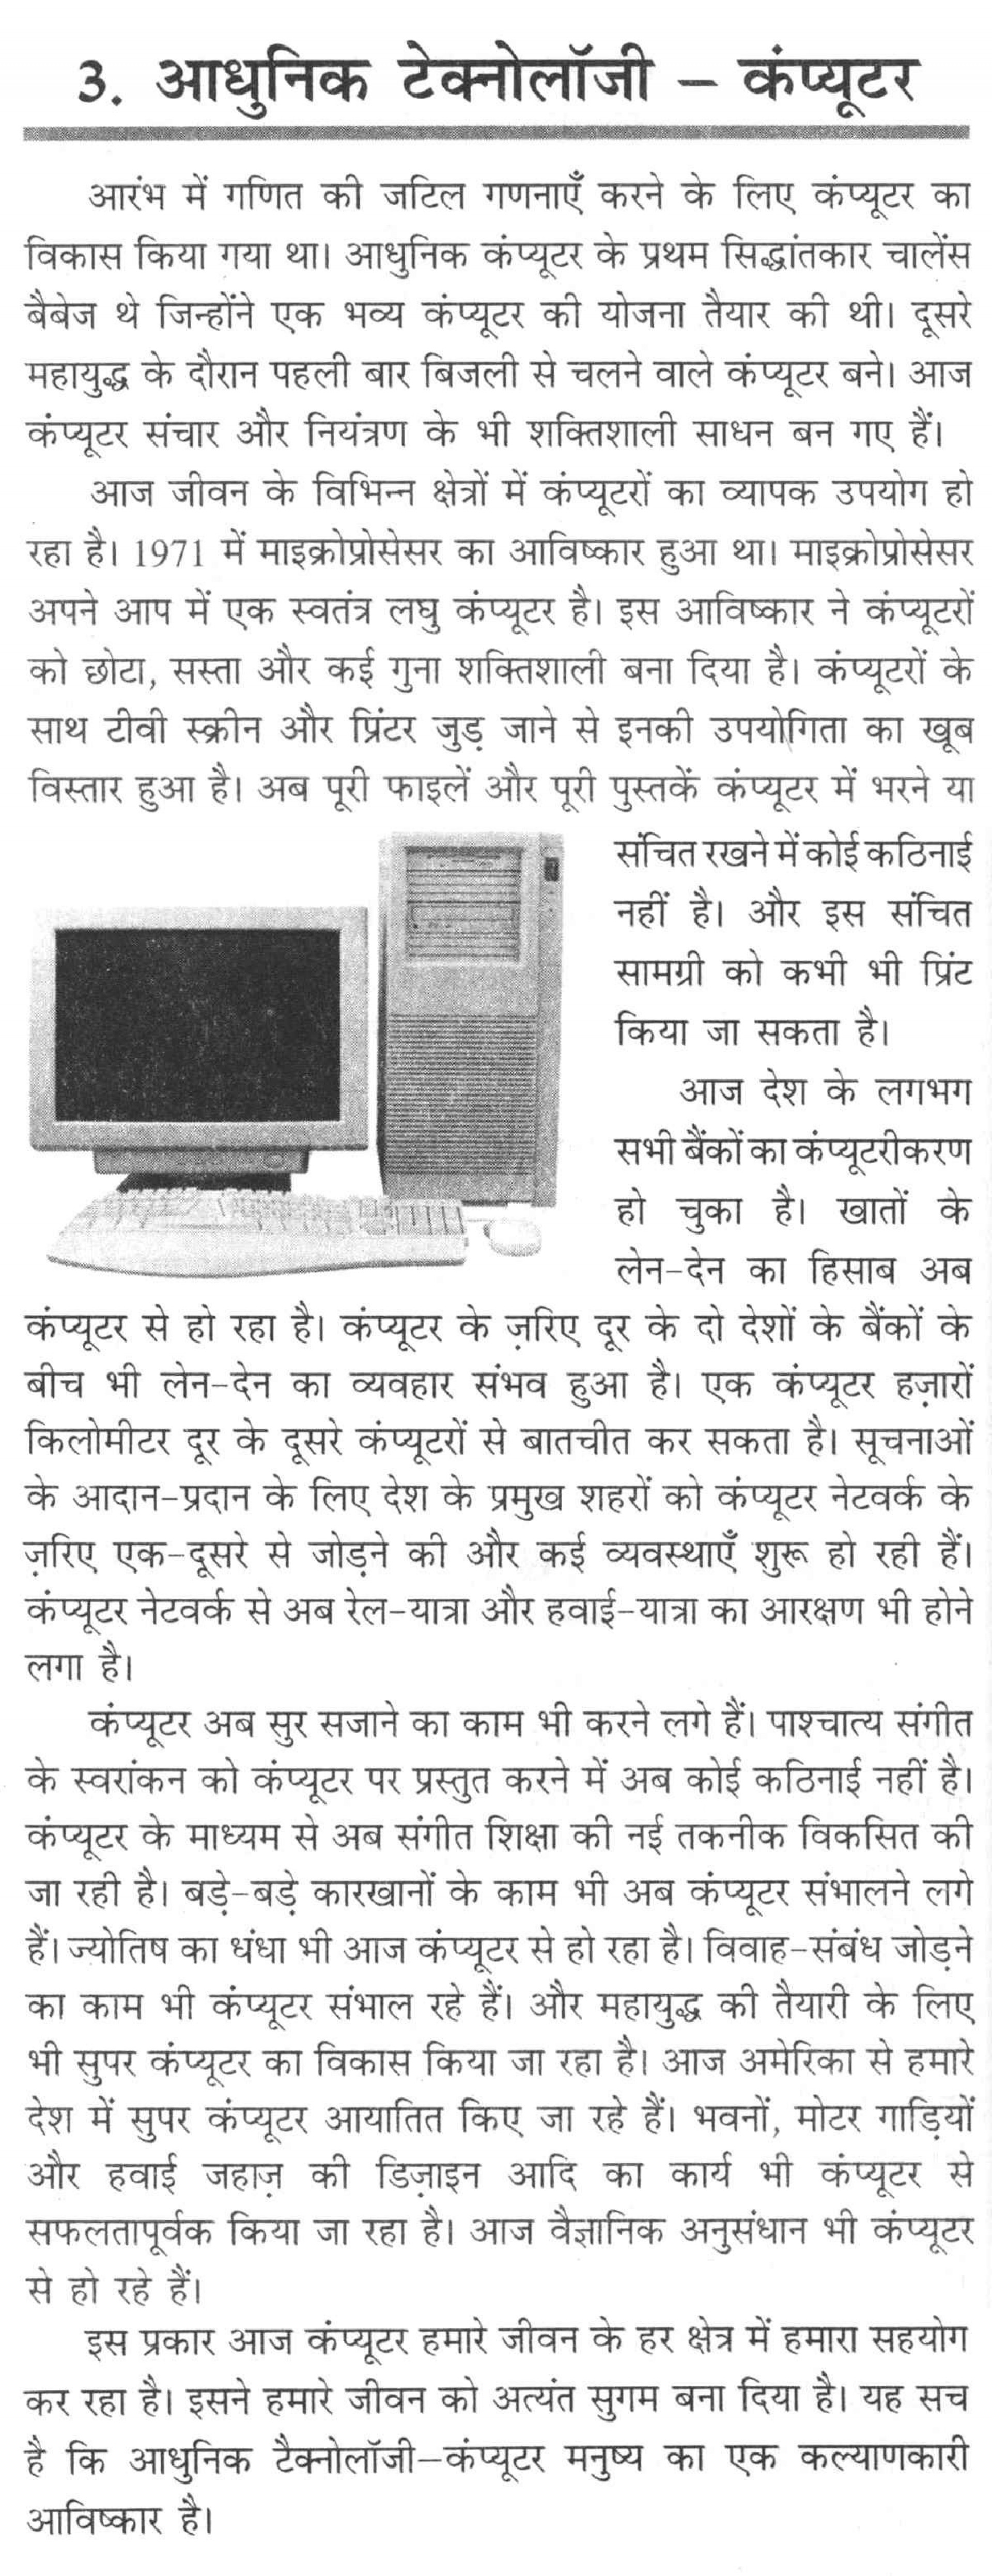 006 Essay Example On Computer 62 Thumb Fearsome Science In Hindi Urdu 1920